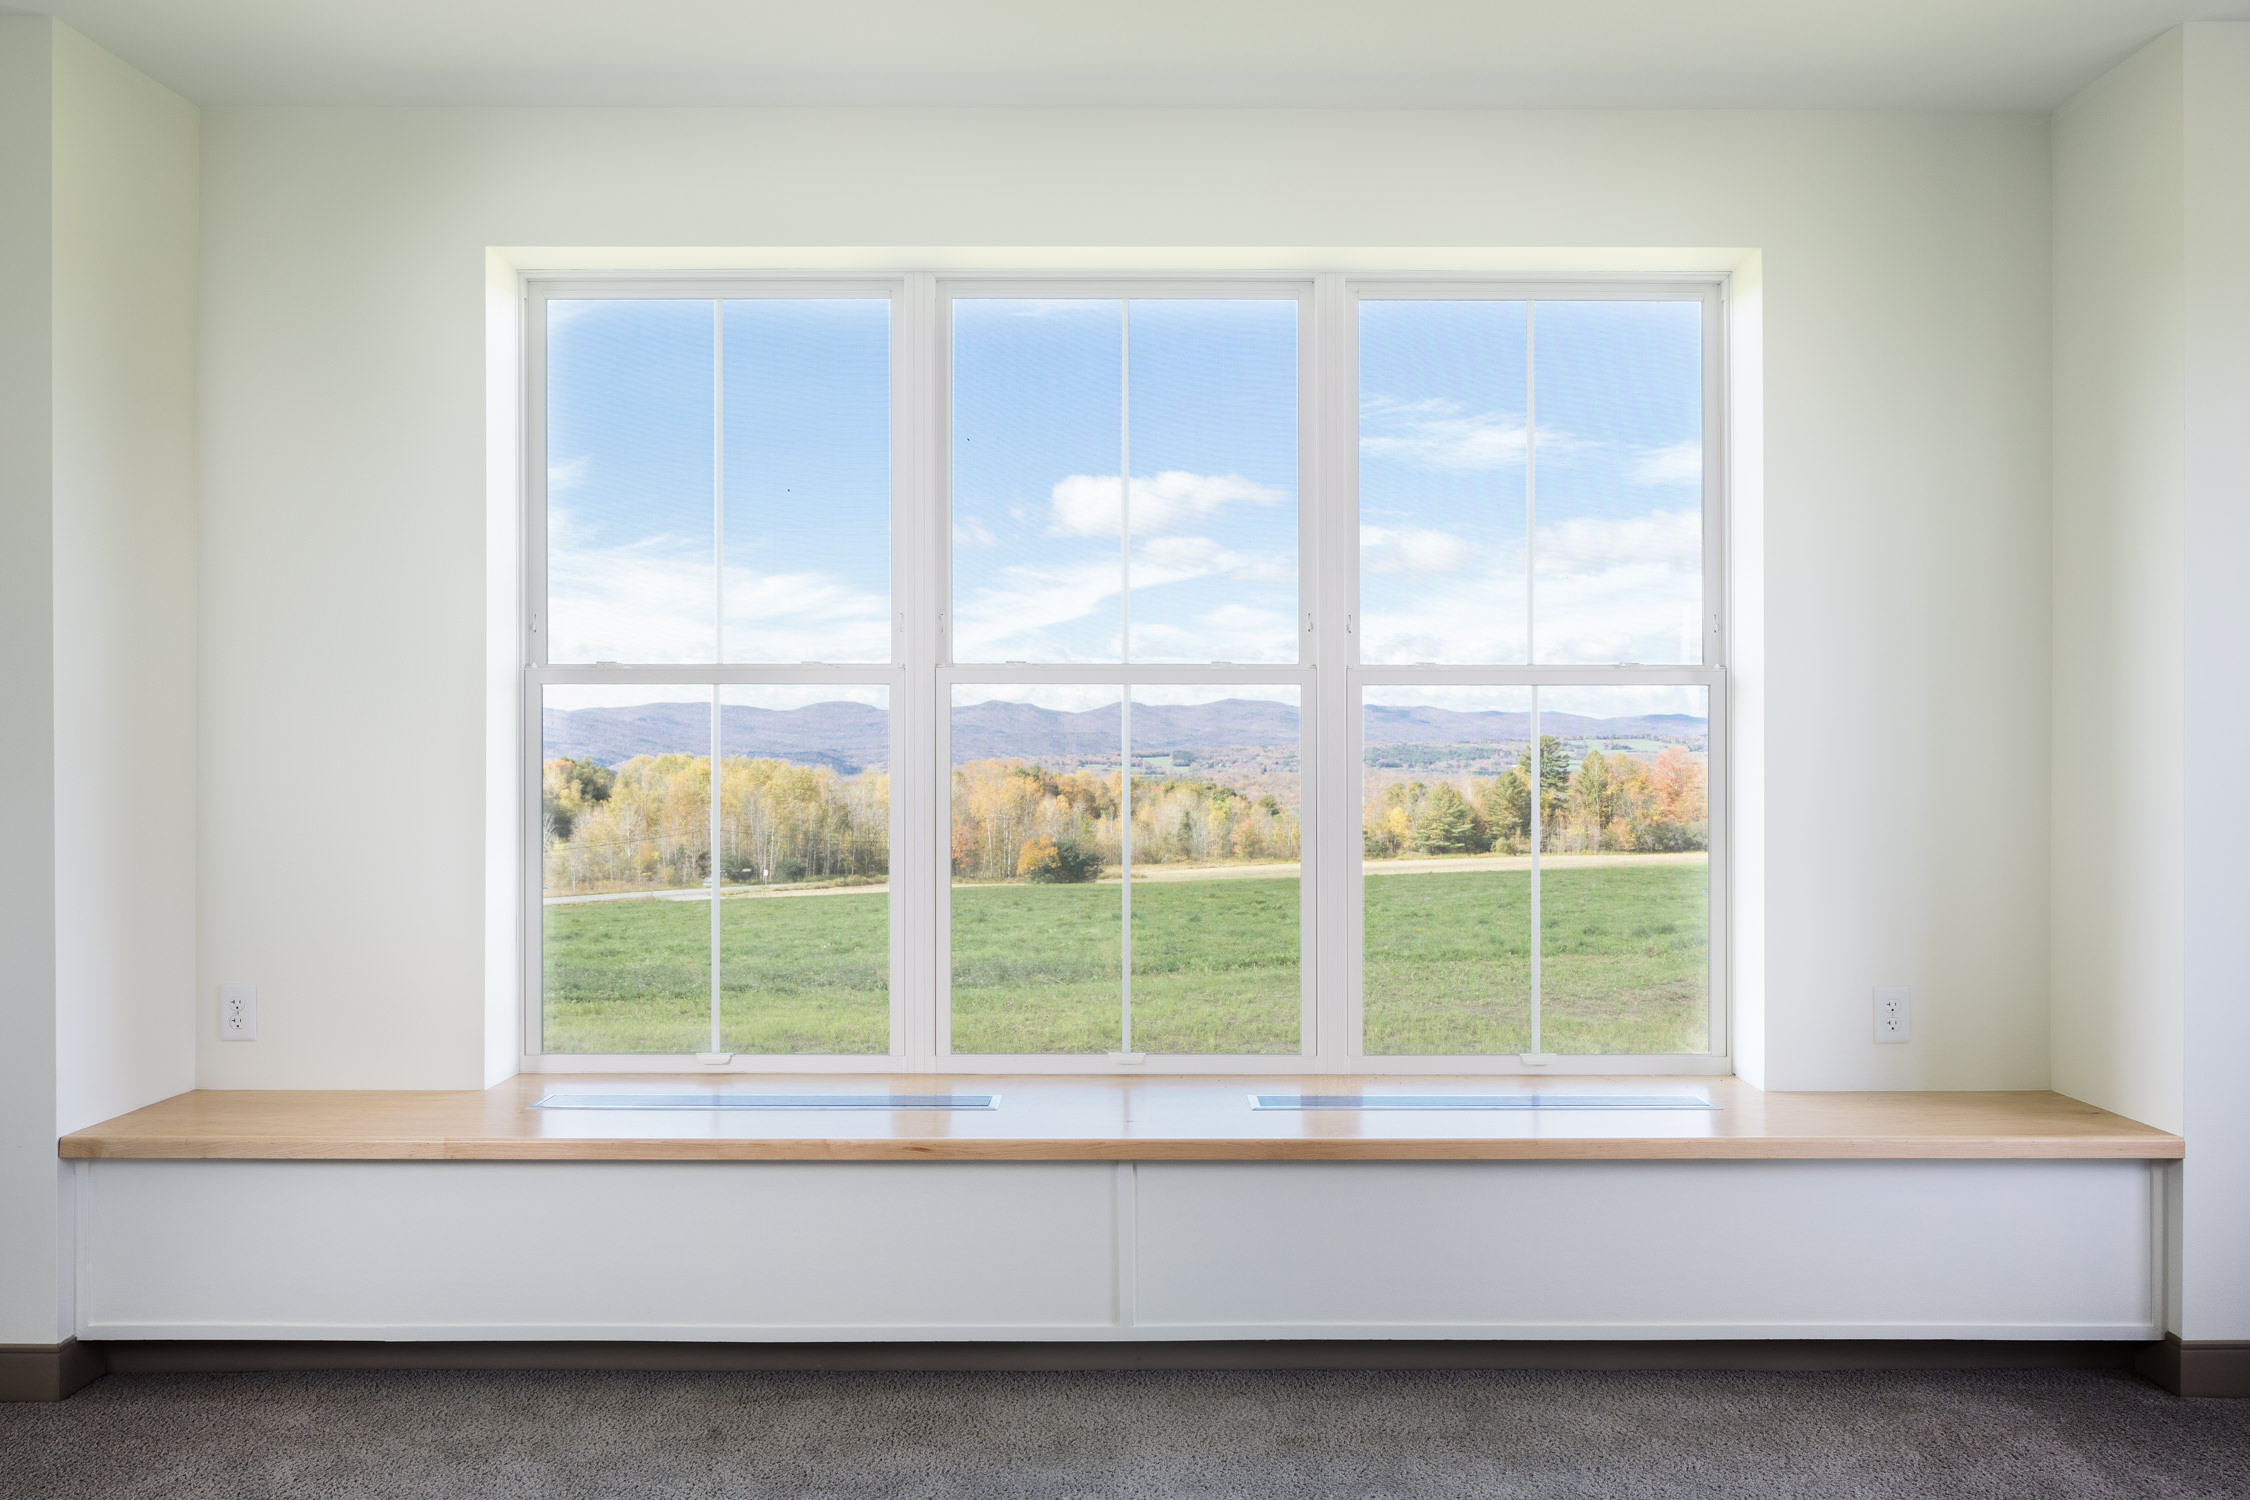 Photo of the eastward mountain view through the bench seat windows of a unit in the Strode Independent Living facility by Vermont architecture photographer Stina Booth